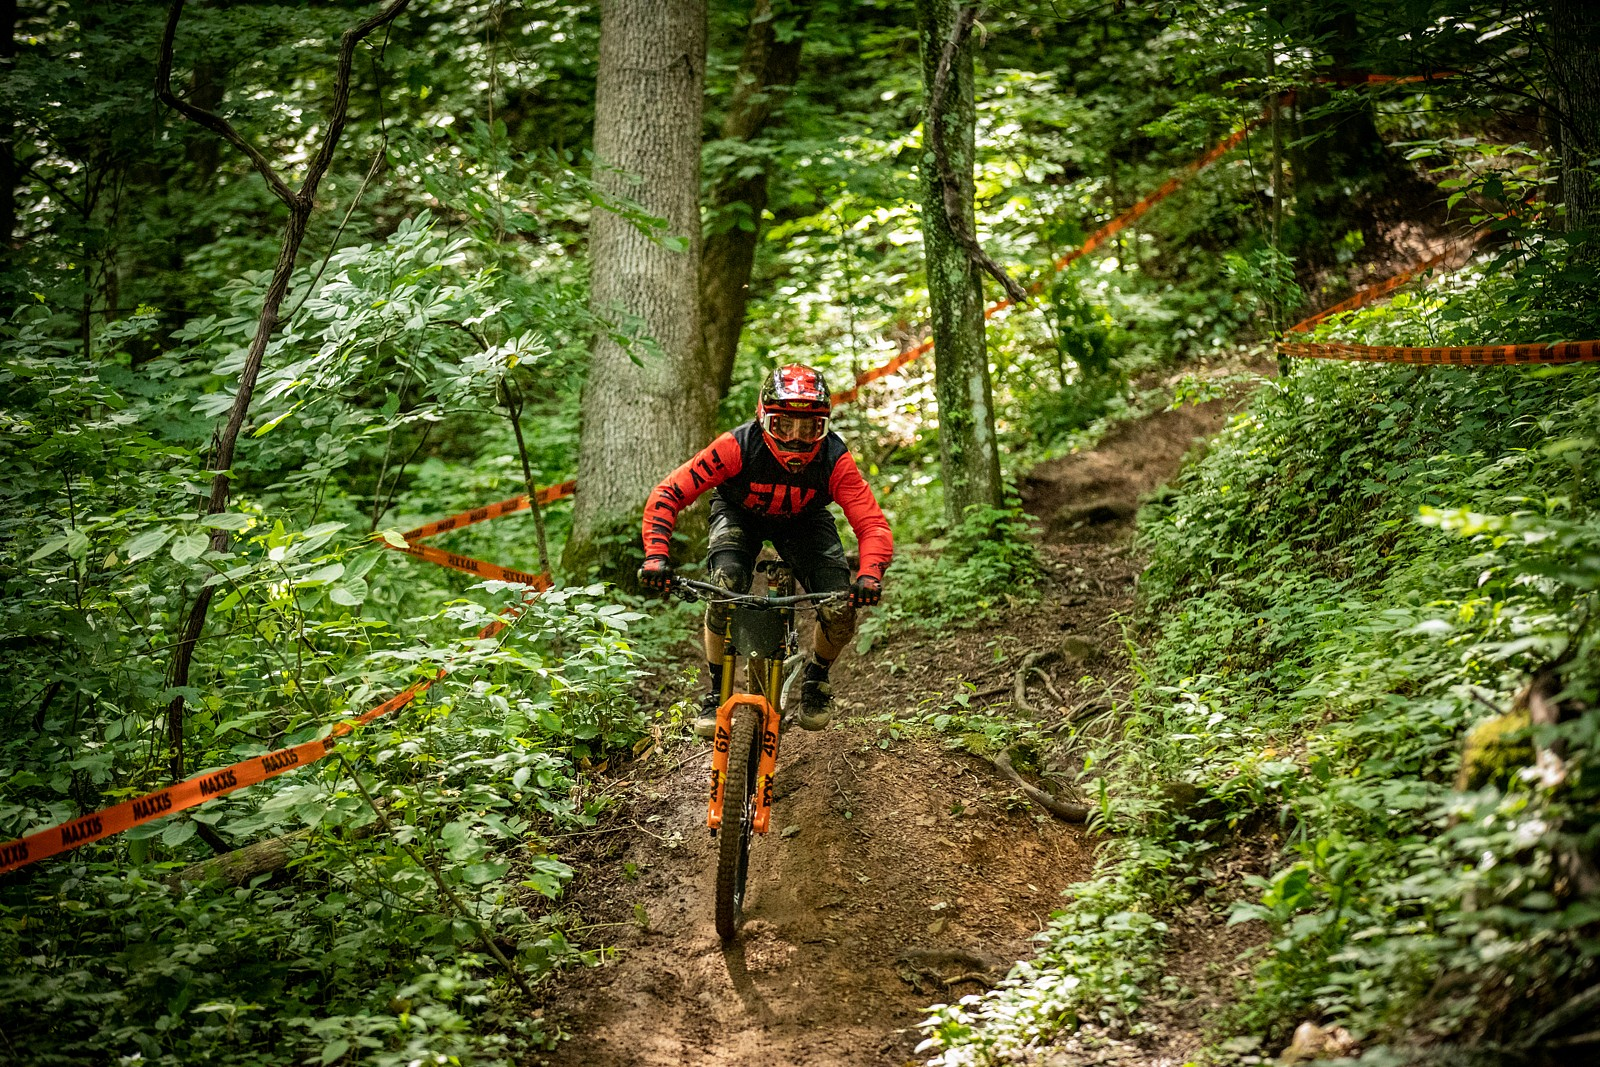 It's Green at Windrock - JackRice - Mountain Biking Pictures - Vital MTB